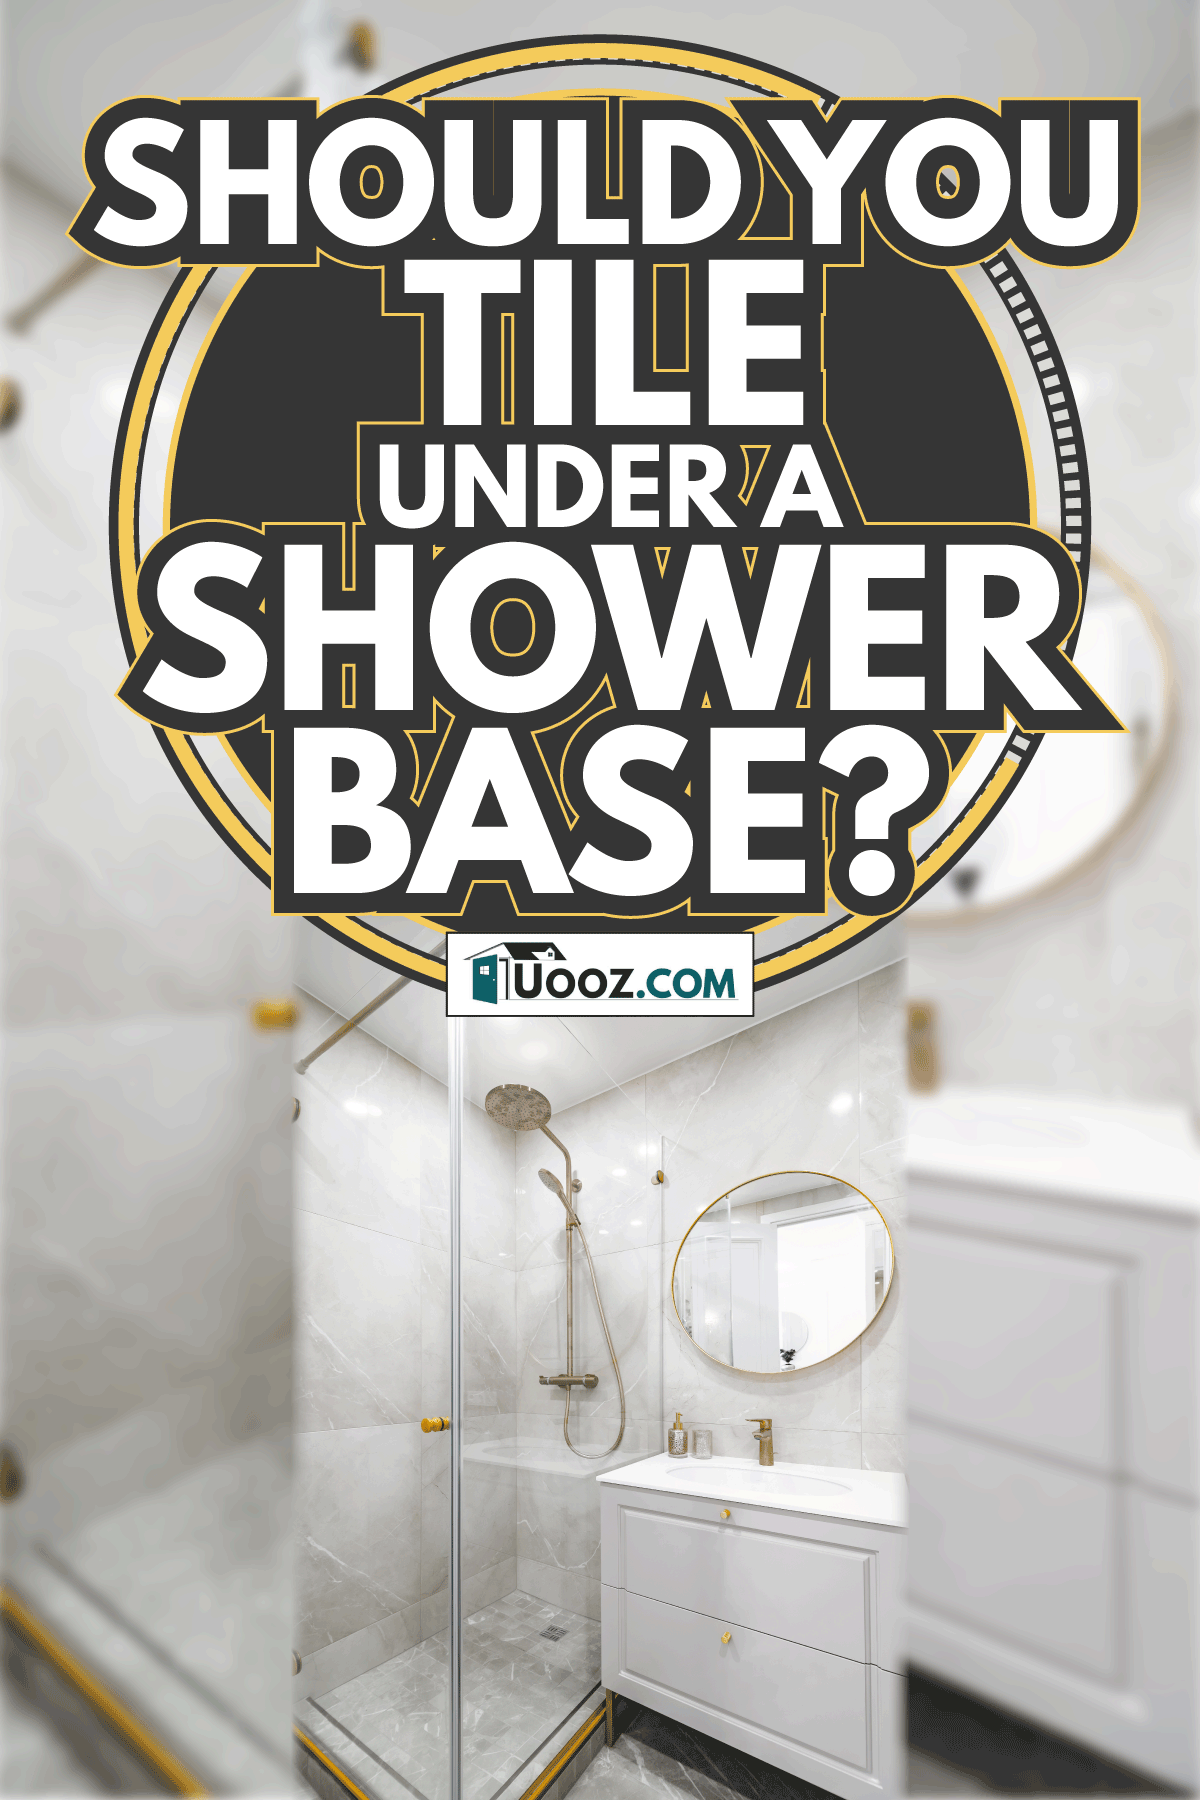 bathroom with shower cabin and sink, bright colours. Should You Tile Under A Shower Base